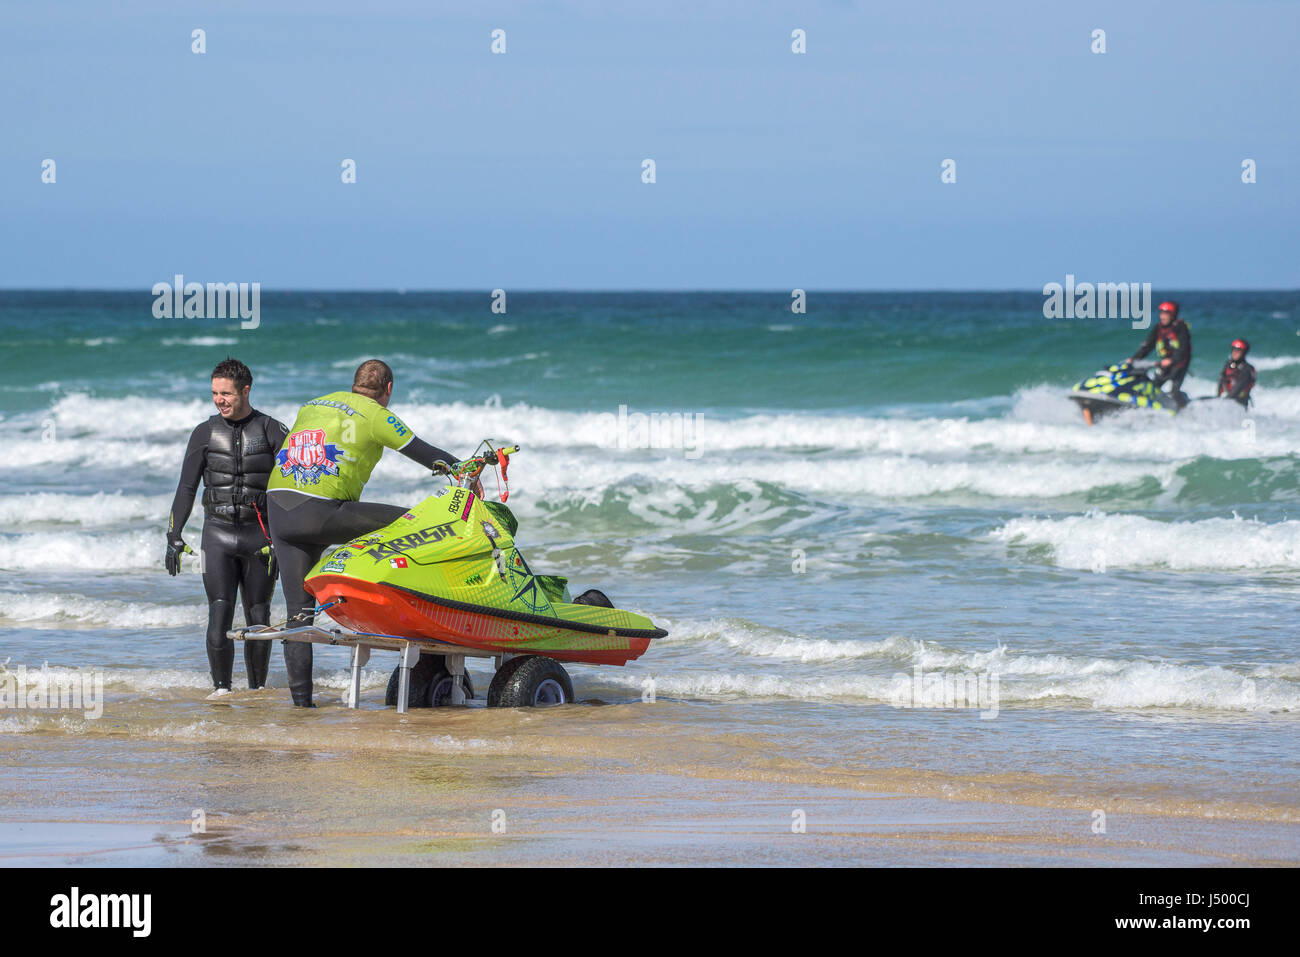 Jetski; Jet ski; Competitors at the IFWA championships; Battle of the Pilots; Competition; Sport; Sea; Spray; PWC; - Stock Image